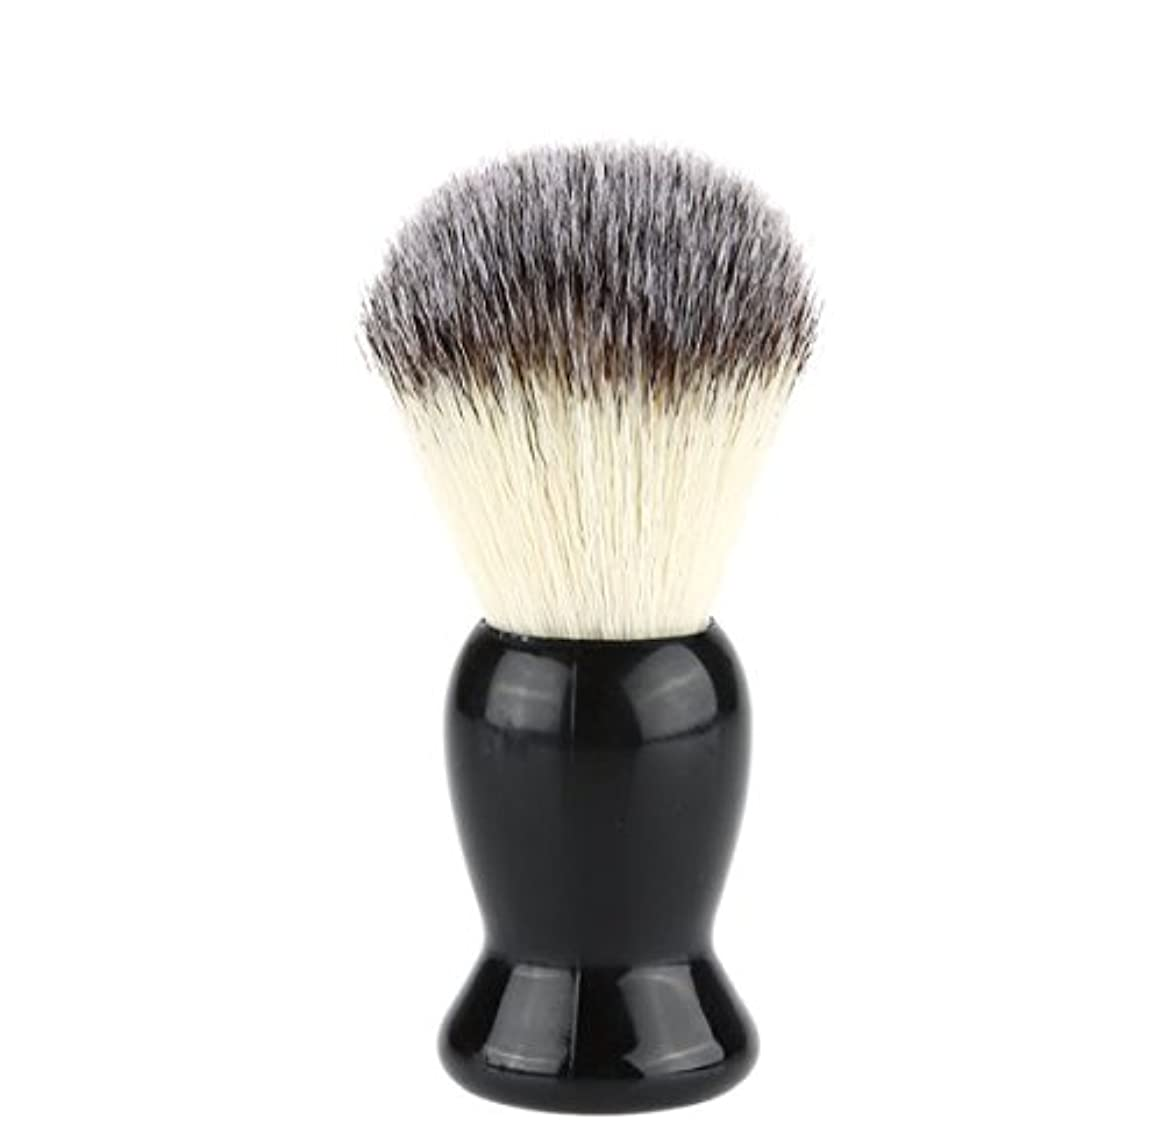 ワイプ失悪魔Superb Barber Salon Shaving Brush Black Handle Face Beard Cleaning Men Shaving Razor Brush Cleaning Appliance...